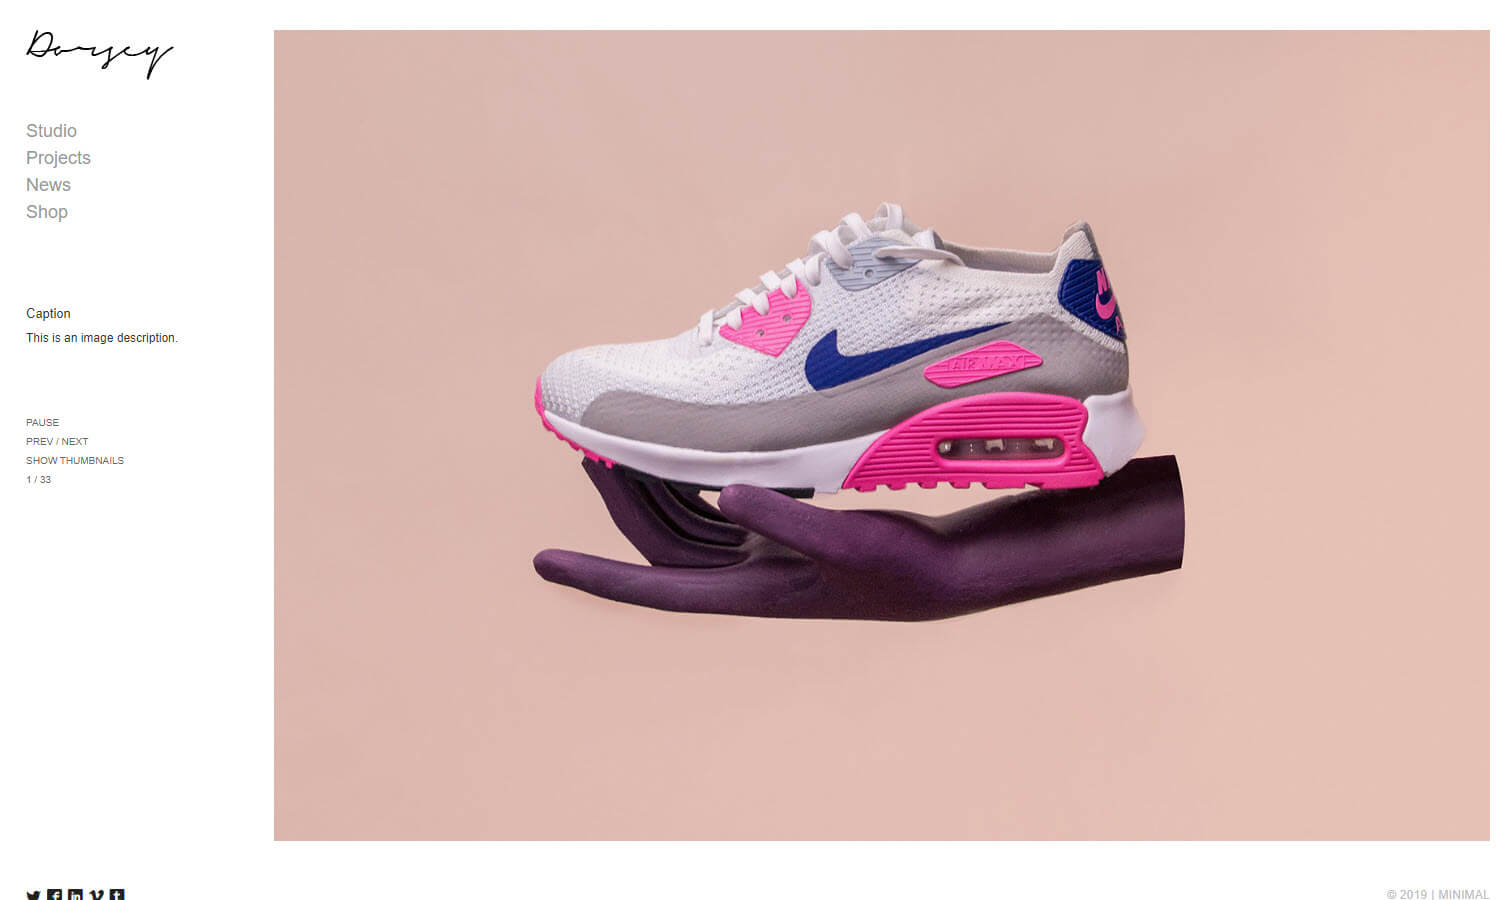 Dorsey screenshot